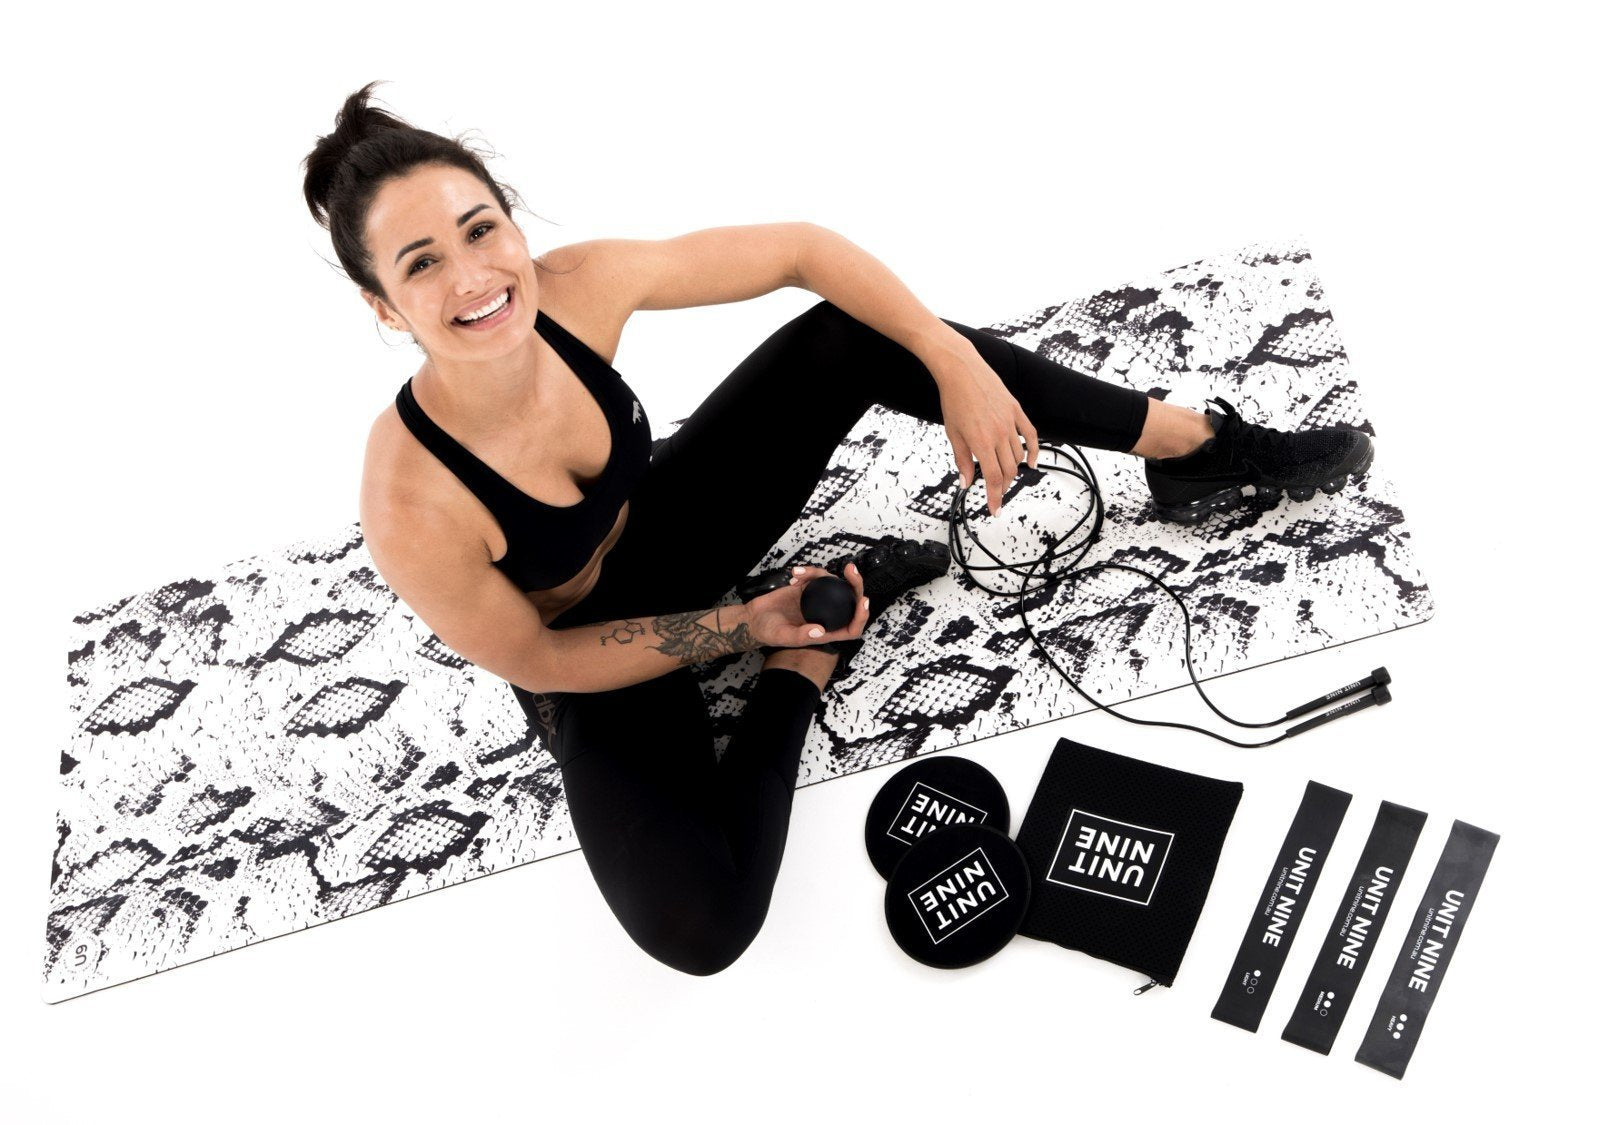 UNIT NINE Sweat Pack Plus Workouts